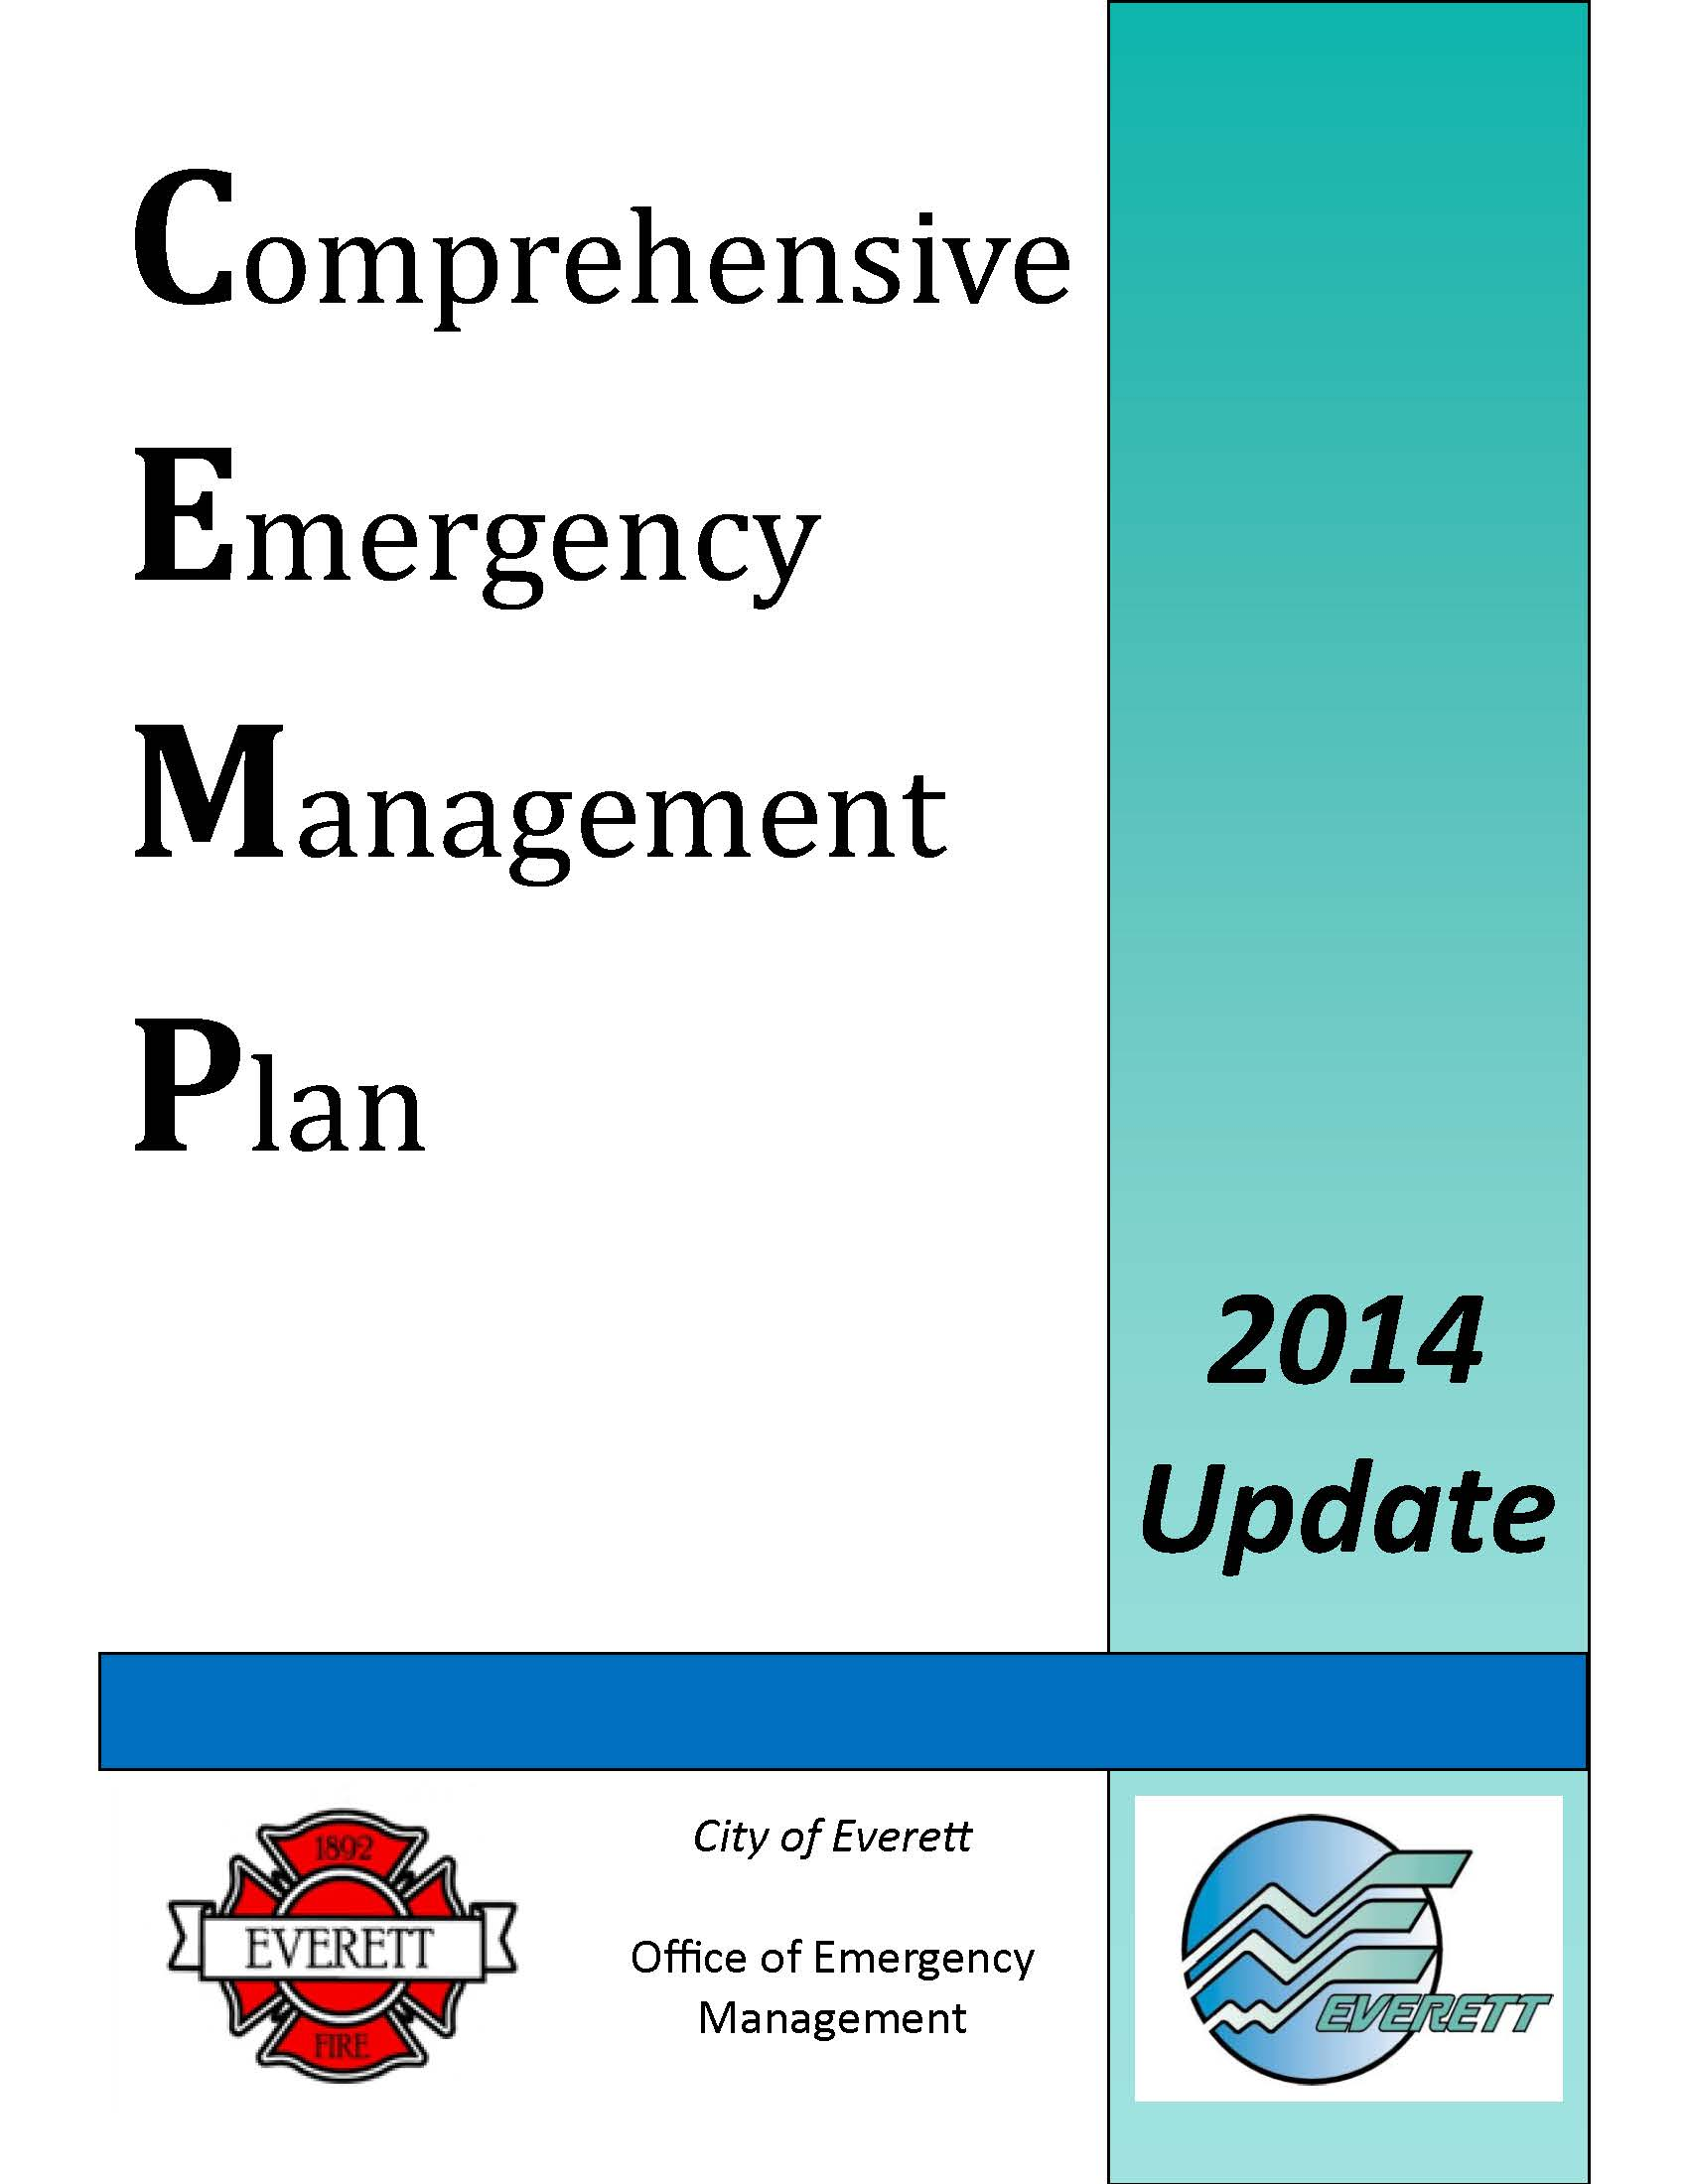 2014 Comprehensive Emergency Management Plan Cover